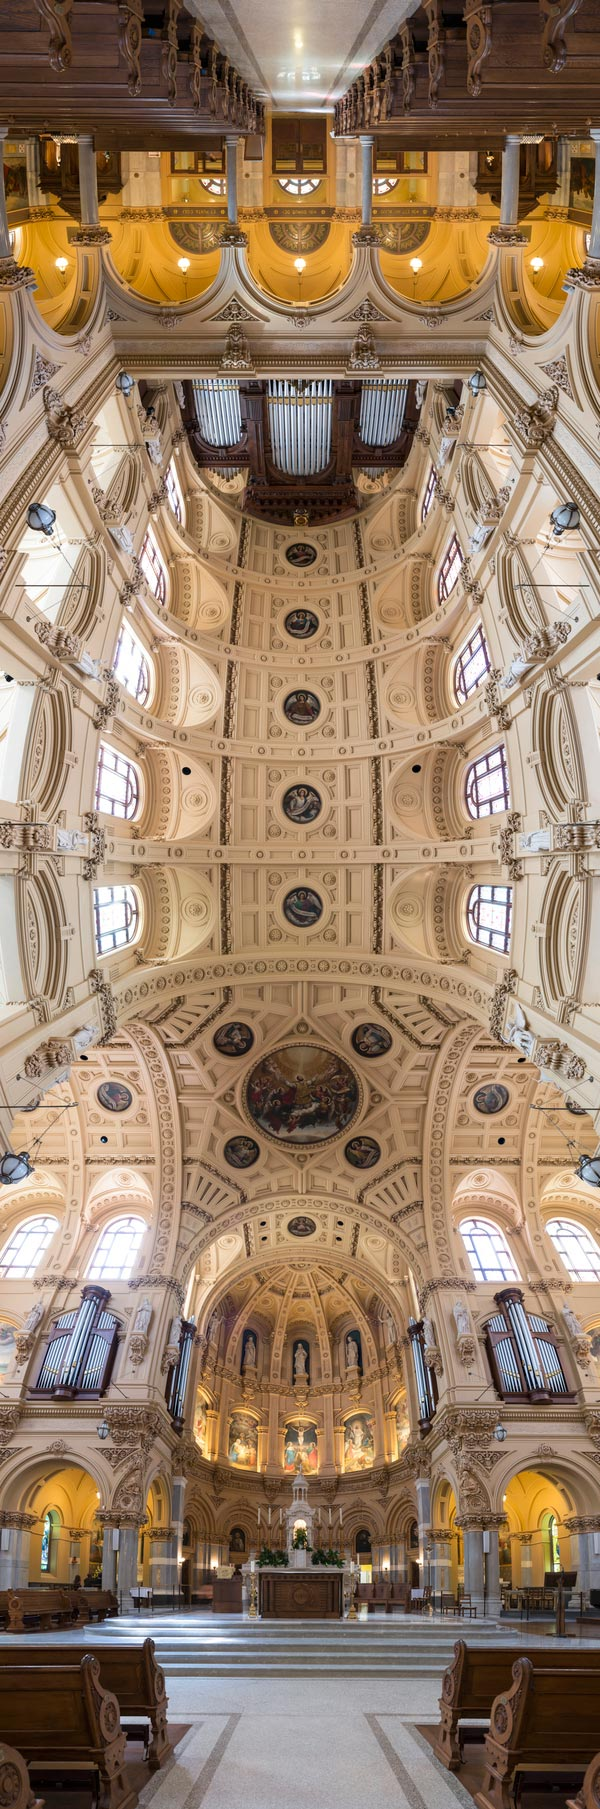 vertical panoramas of church ceilings 1 Amazing Vertical Panoramas of Church Ceilings